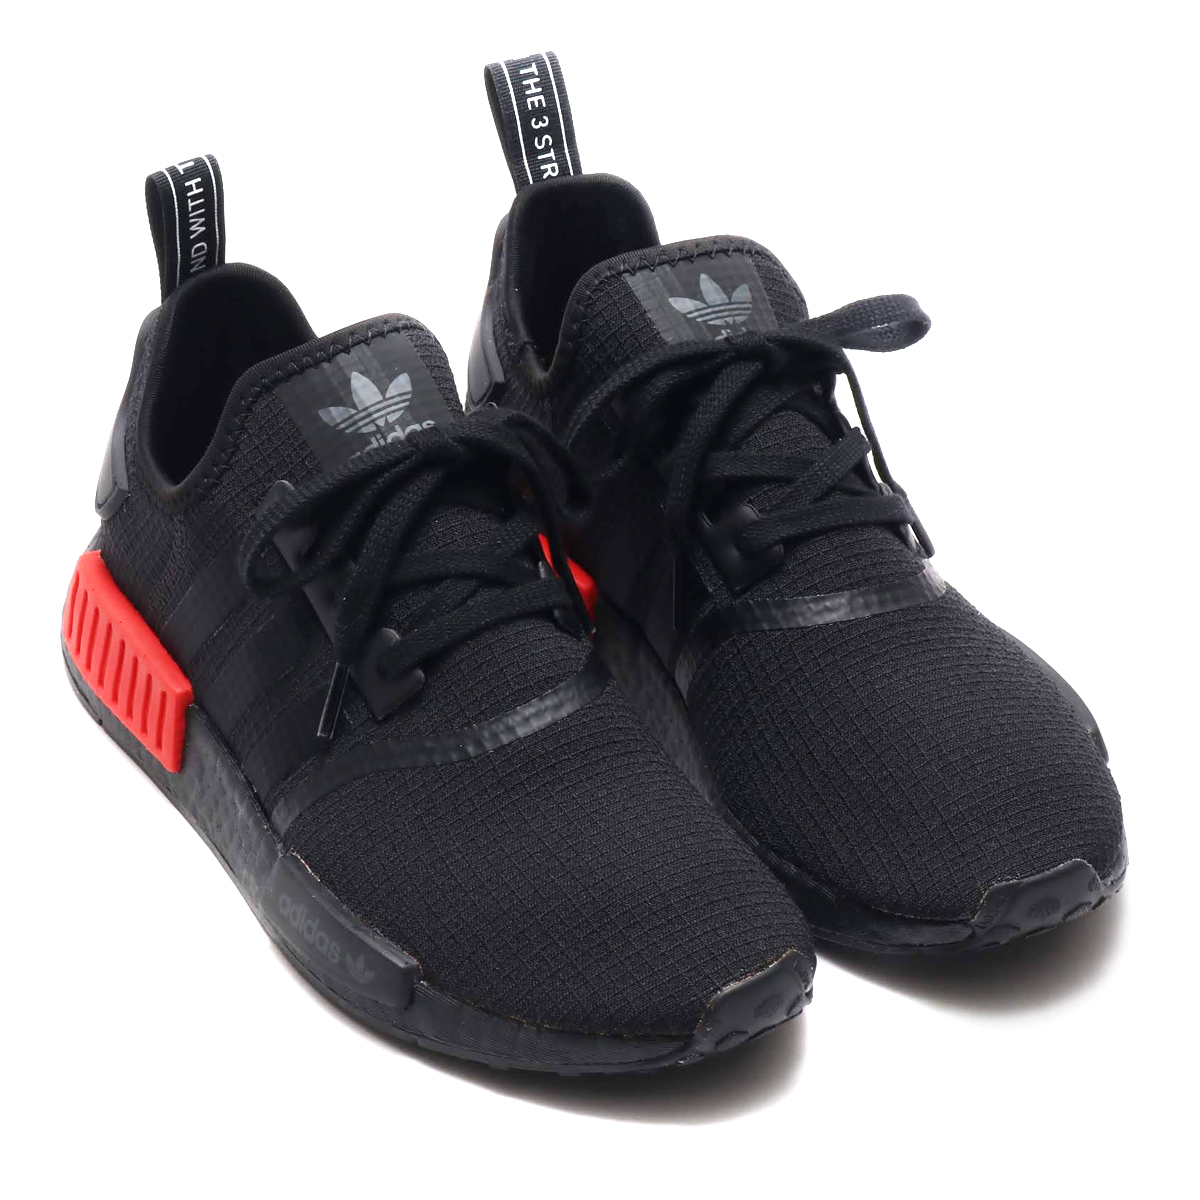 reputable site c95b4 9ea87 adidas NMD R1 (Adidas N M D R1) core black   core black   rush red 18FW ...